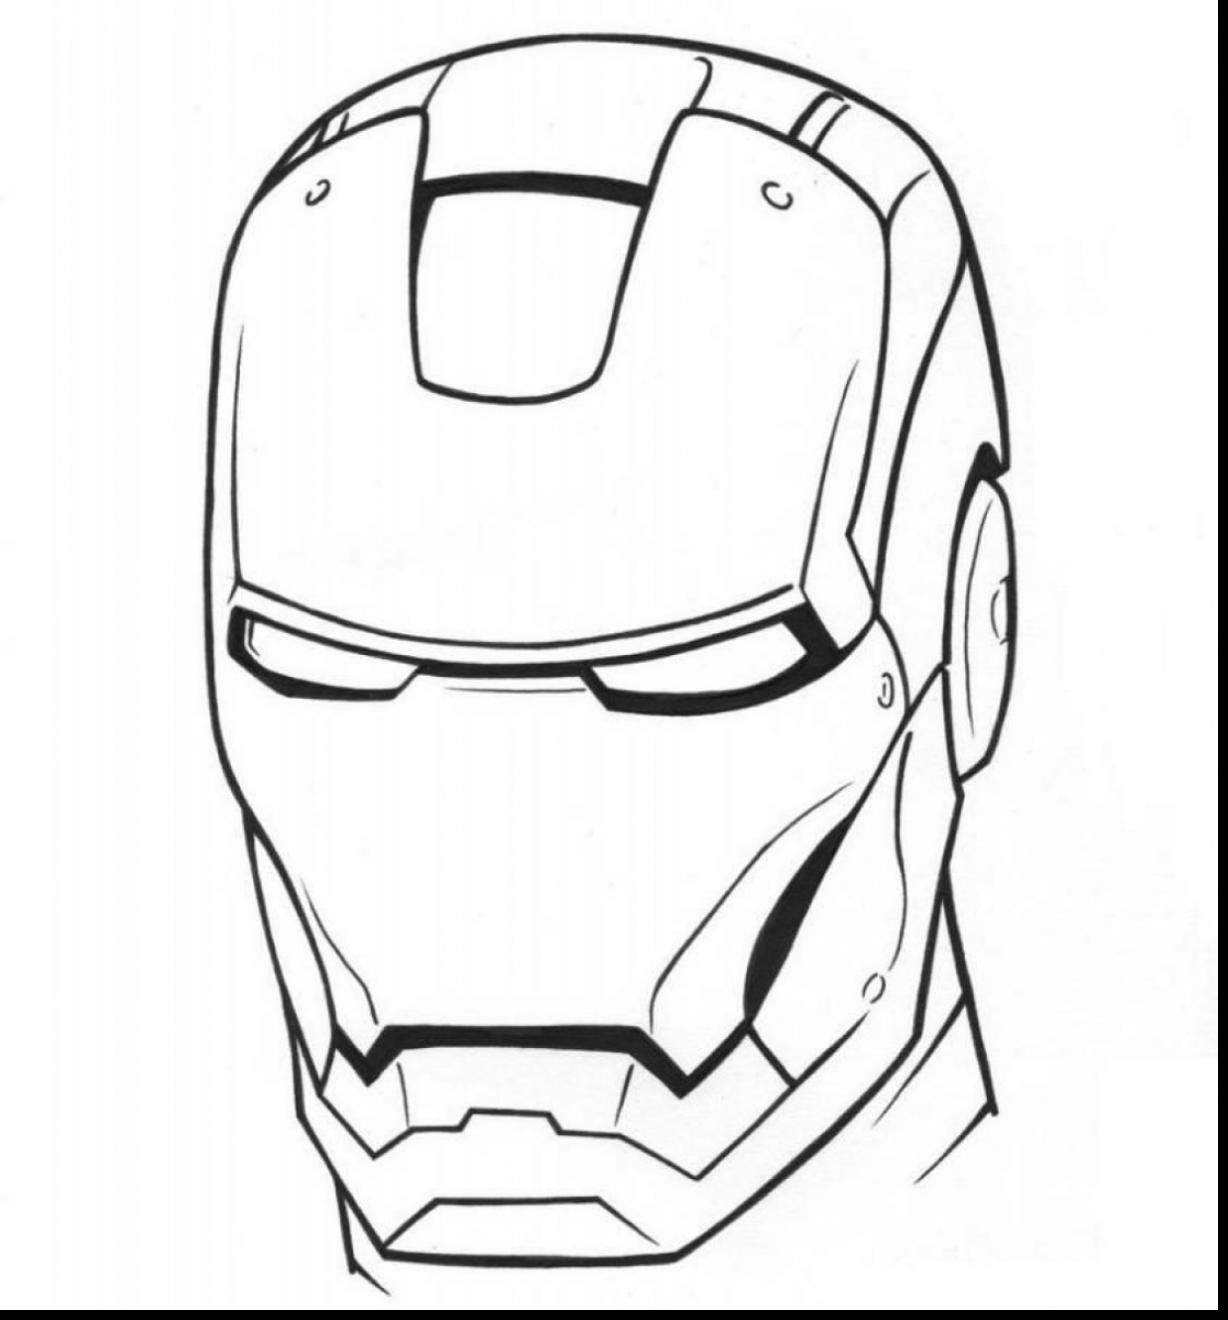 iron man outline man outline drawing at paintingvalleycom explore man iron outline